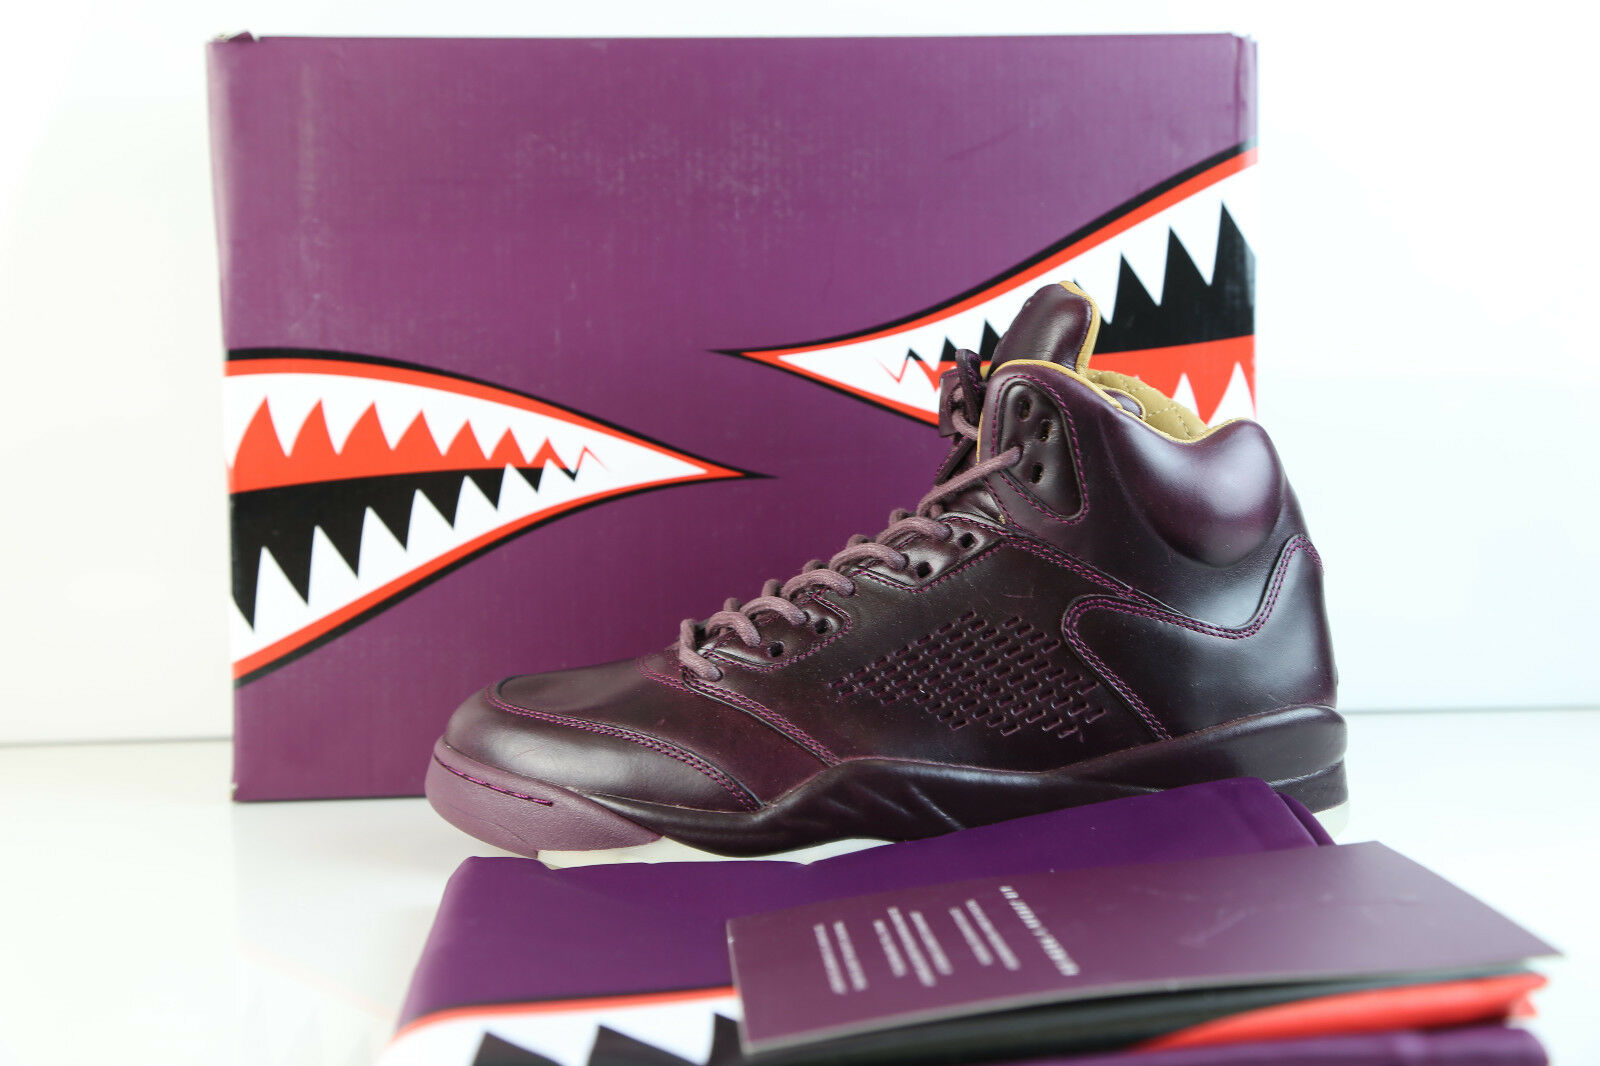 nike air jordan retro segel - 5 prem bordeaux segel retro 881432-612 7.5-9 premium - spitze. 2901e3